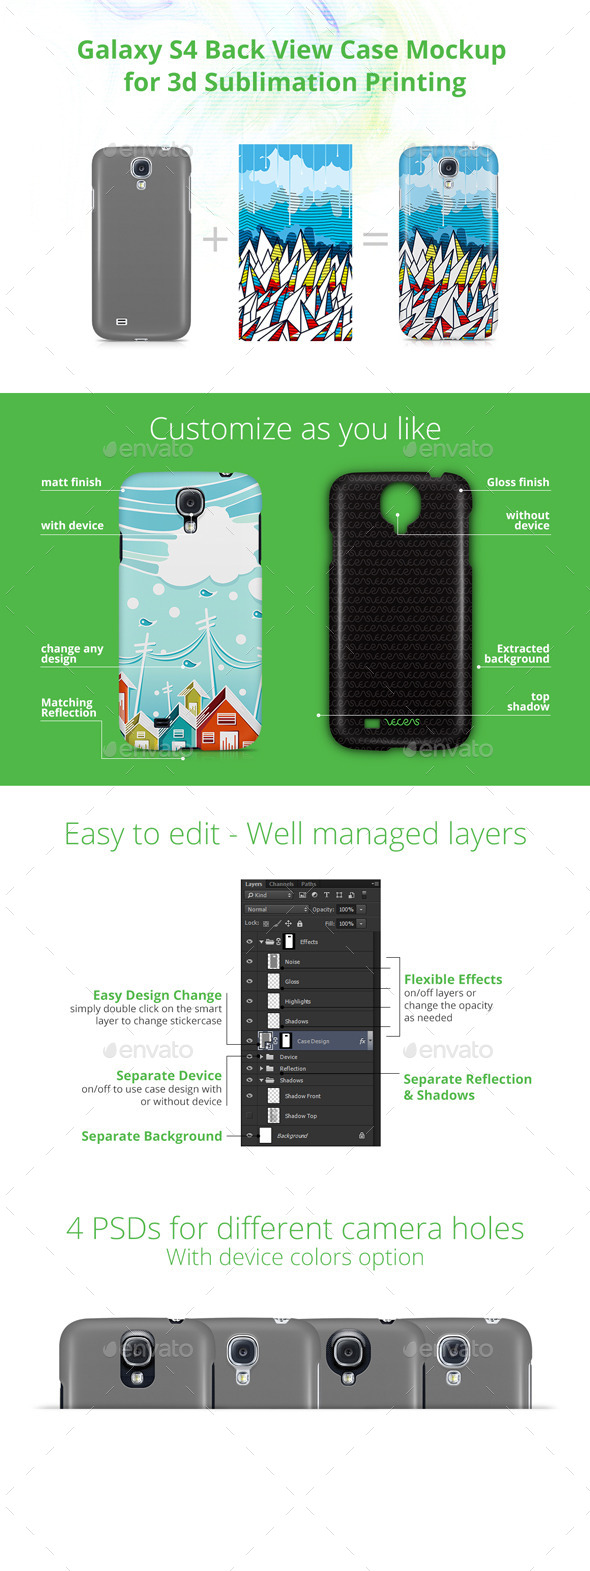 Galaxy S4 Case Design Mockup for 3d Sublimation Printing - Back View